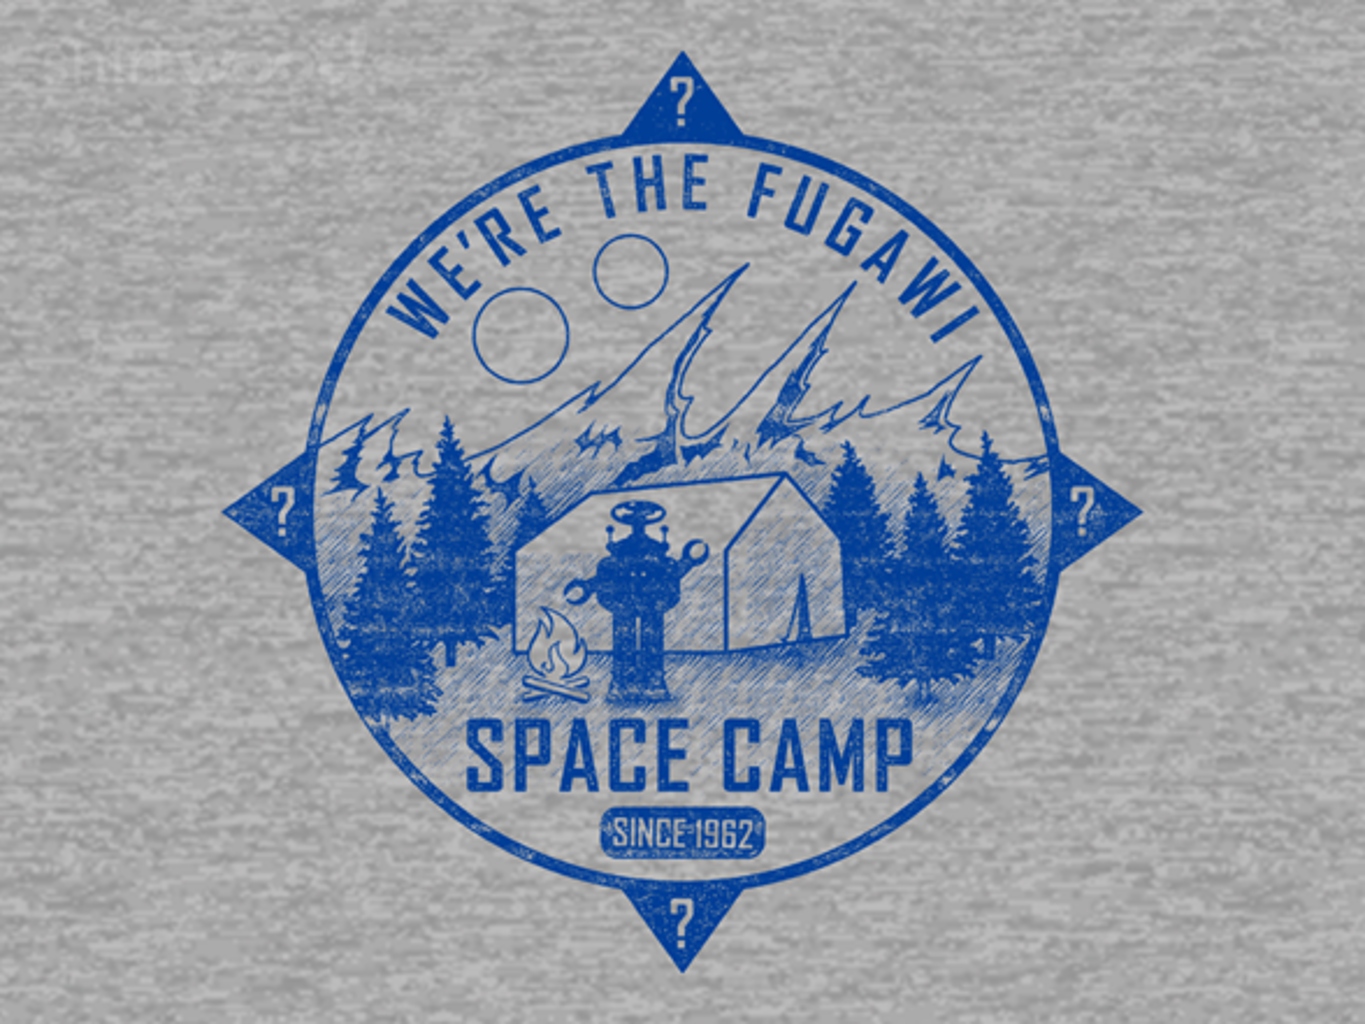 Woot!: Lost in Space Camp